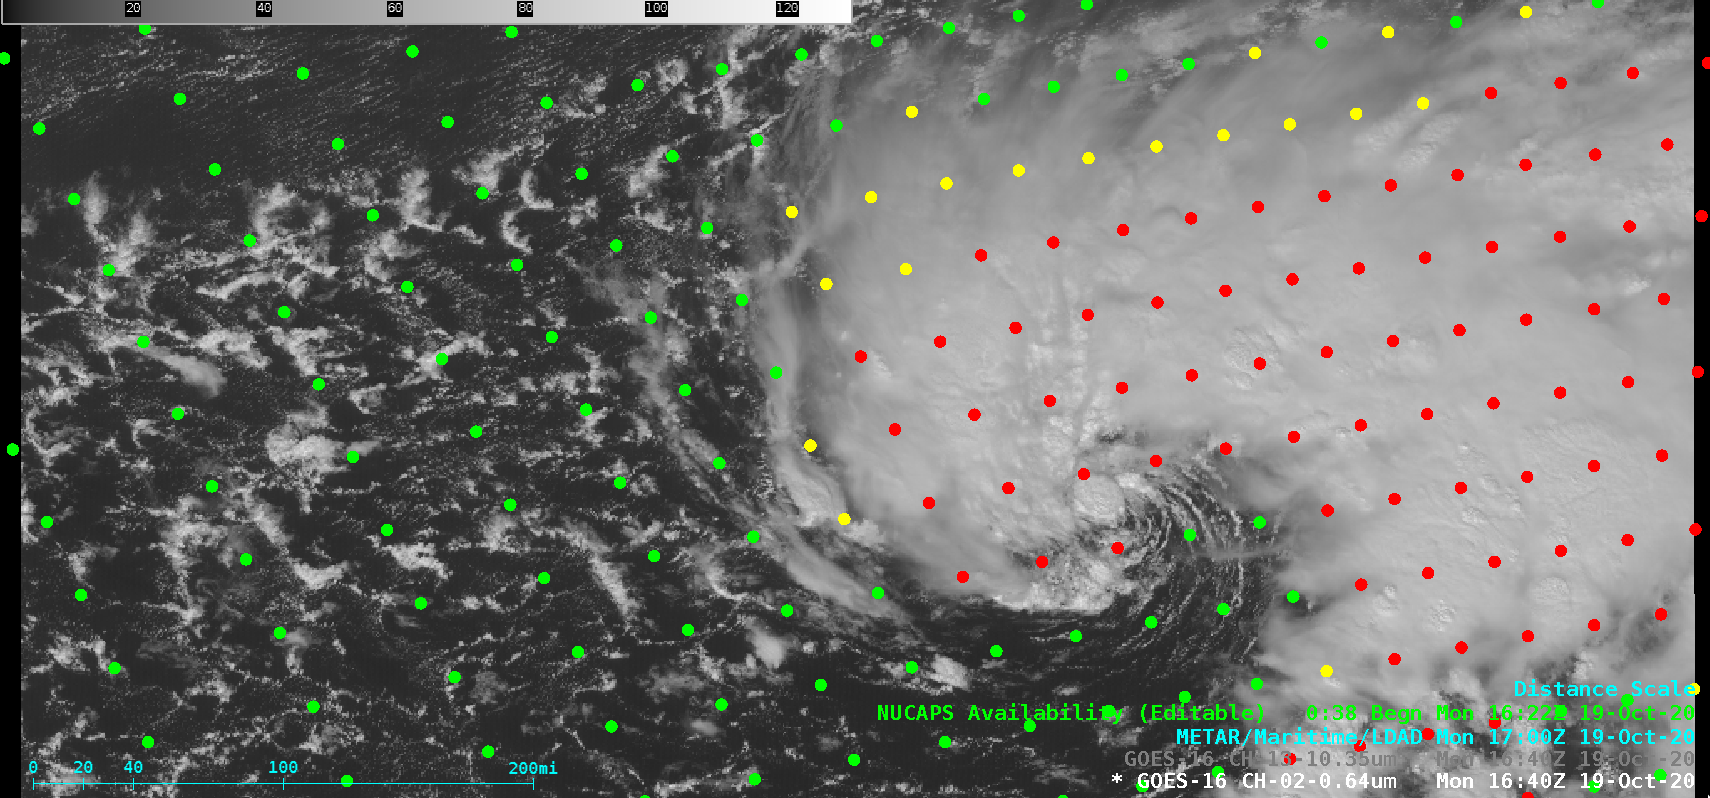 GOES-16 Visible image with plots of available NUCAPS profiles [click to enlarge]